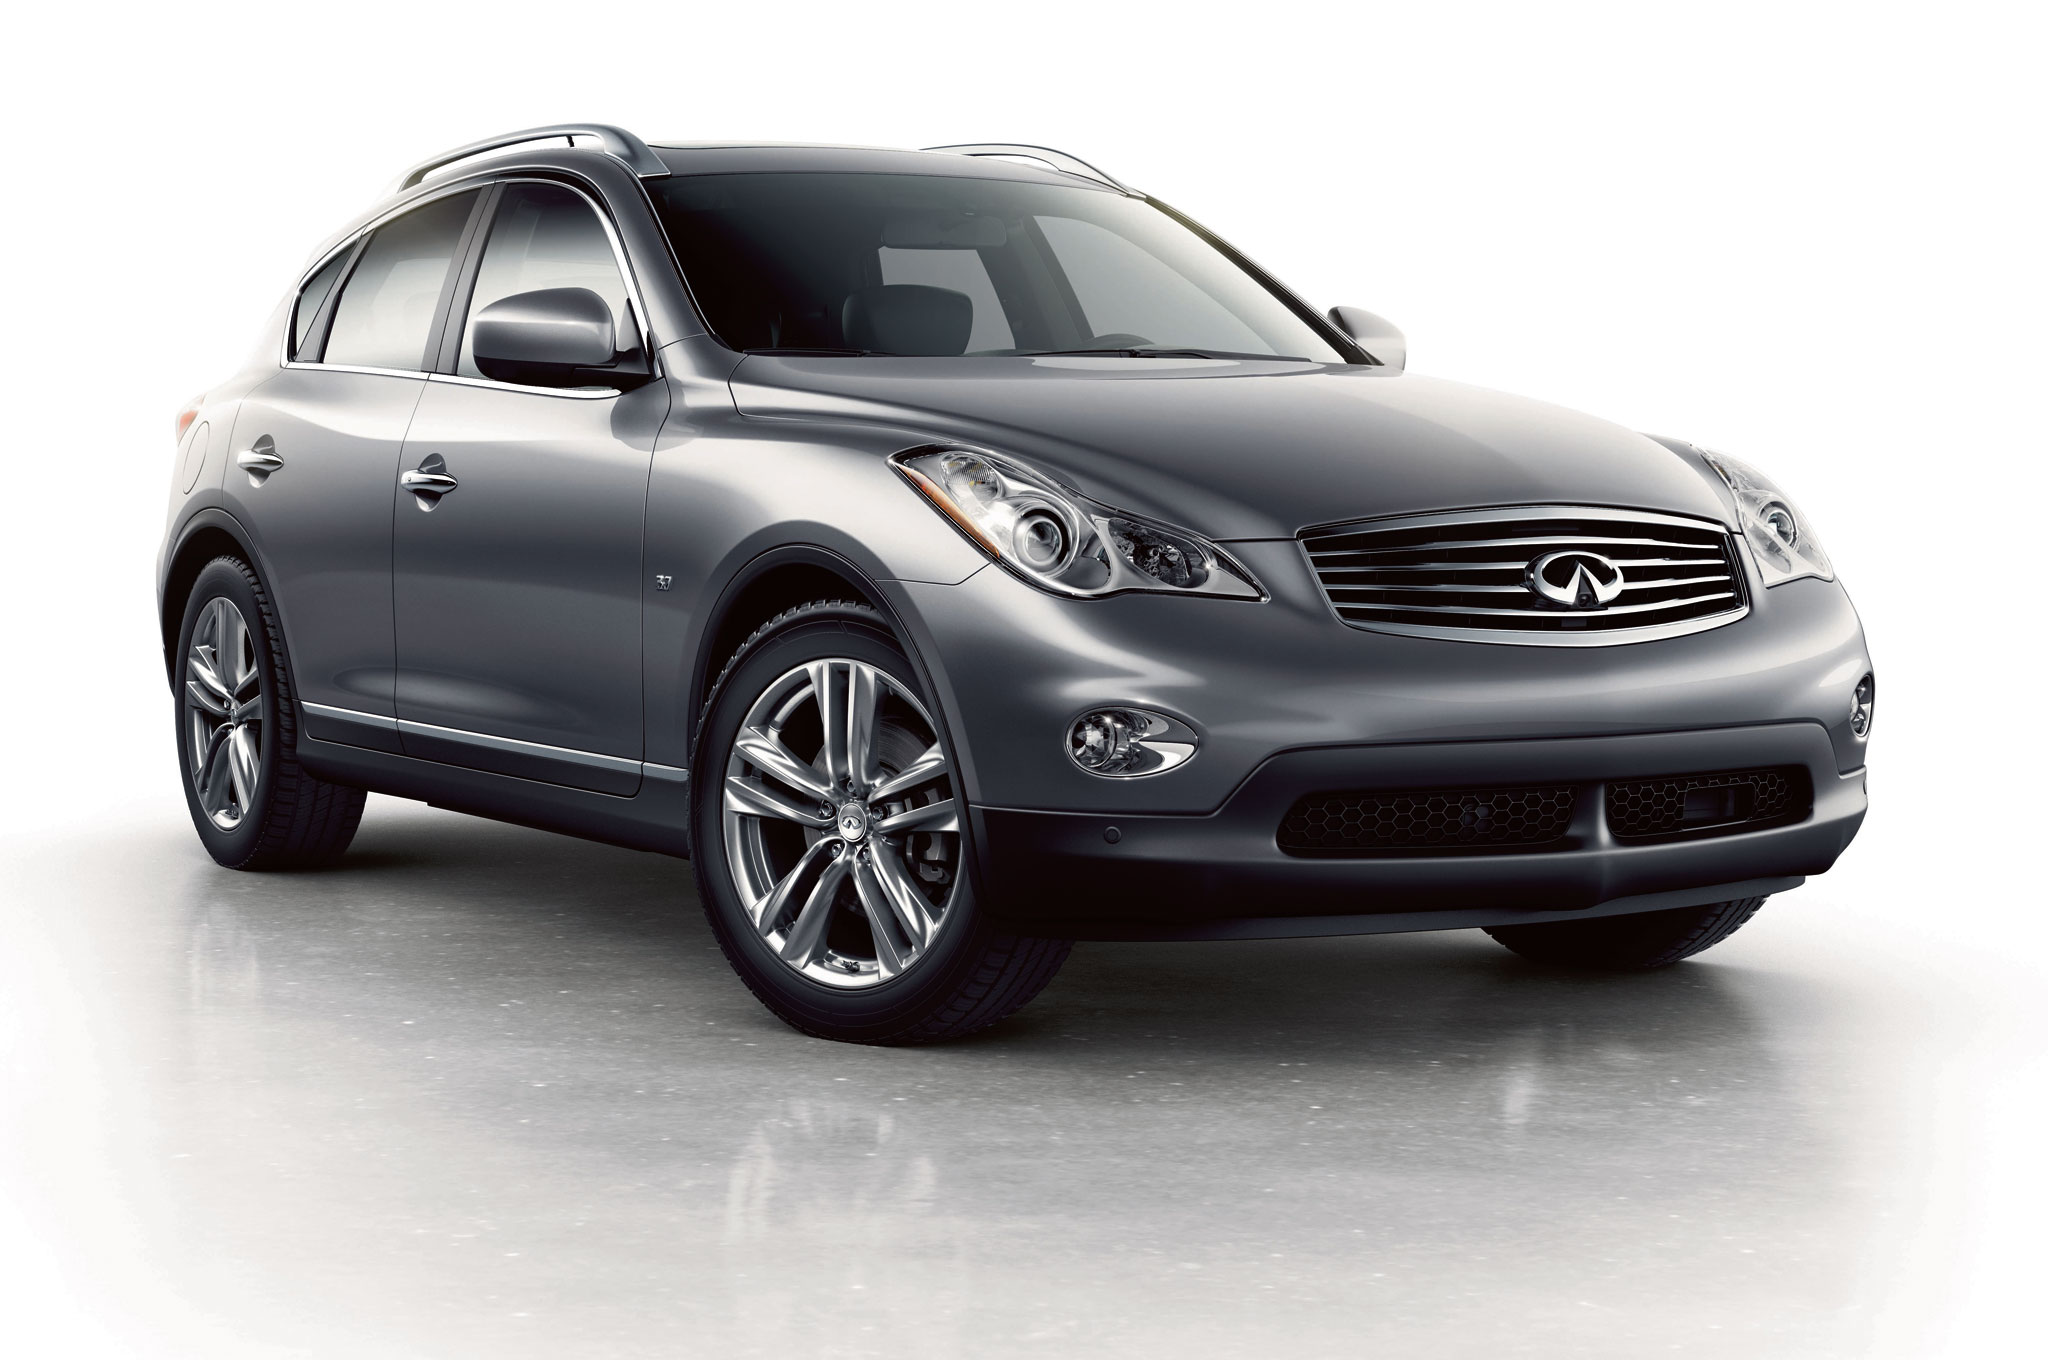 2015 Infiniti QX50 Front Side View